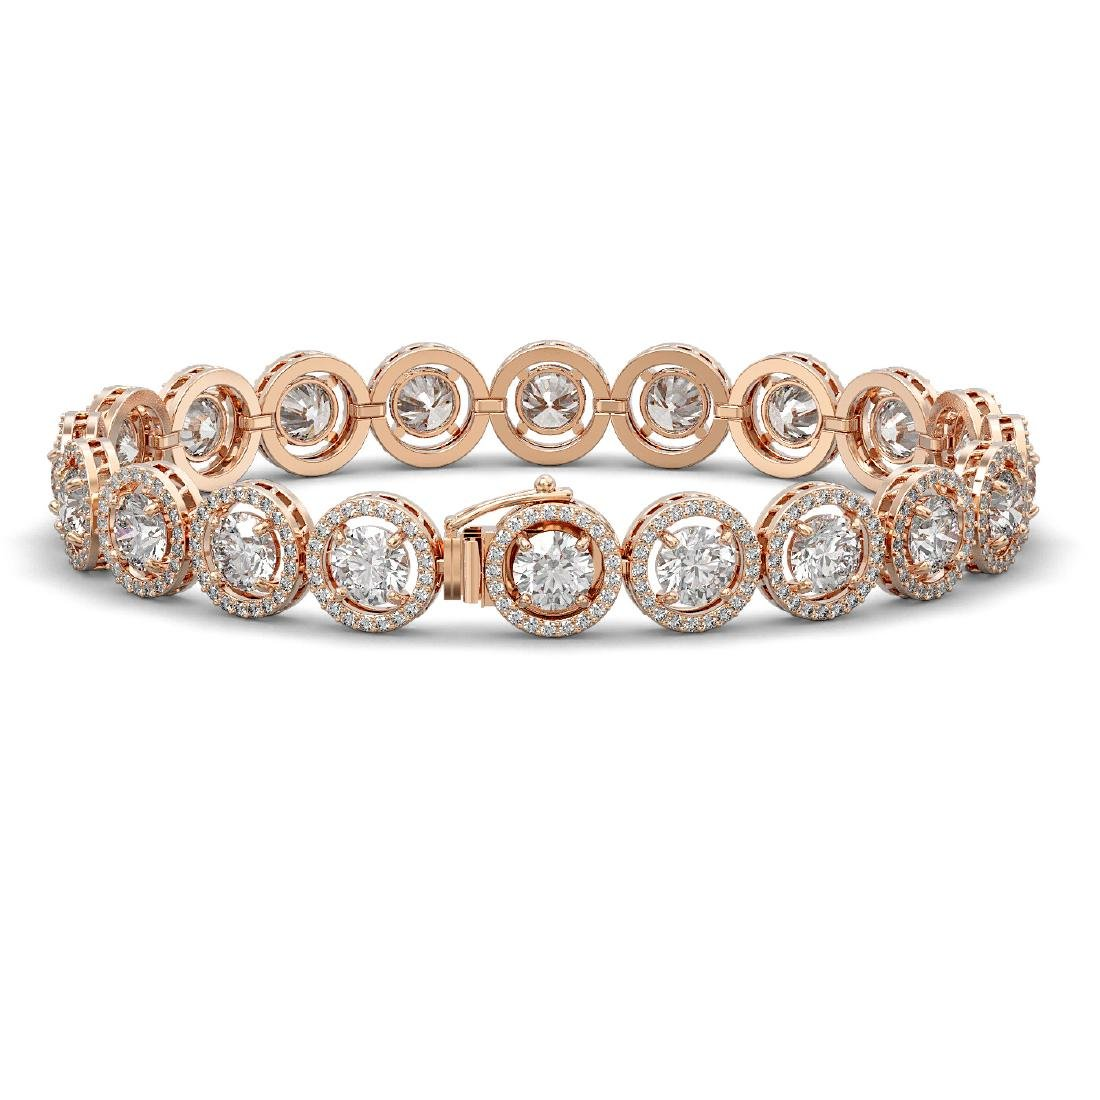 13.42 CTW Diamond Designer Bracelet 18K Rose Gold - 2